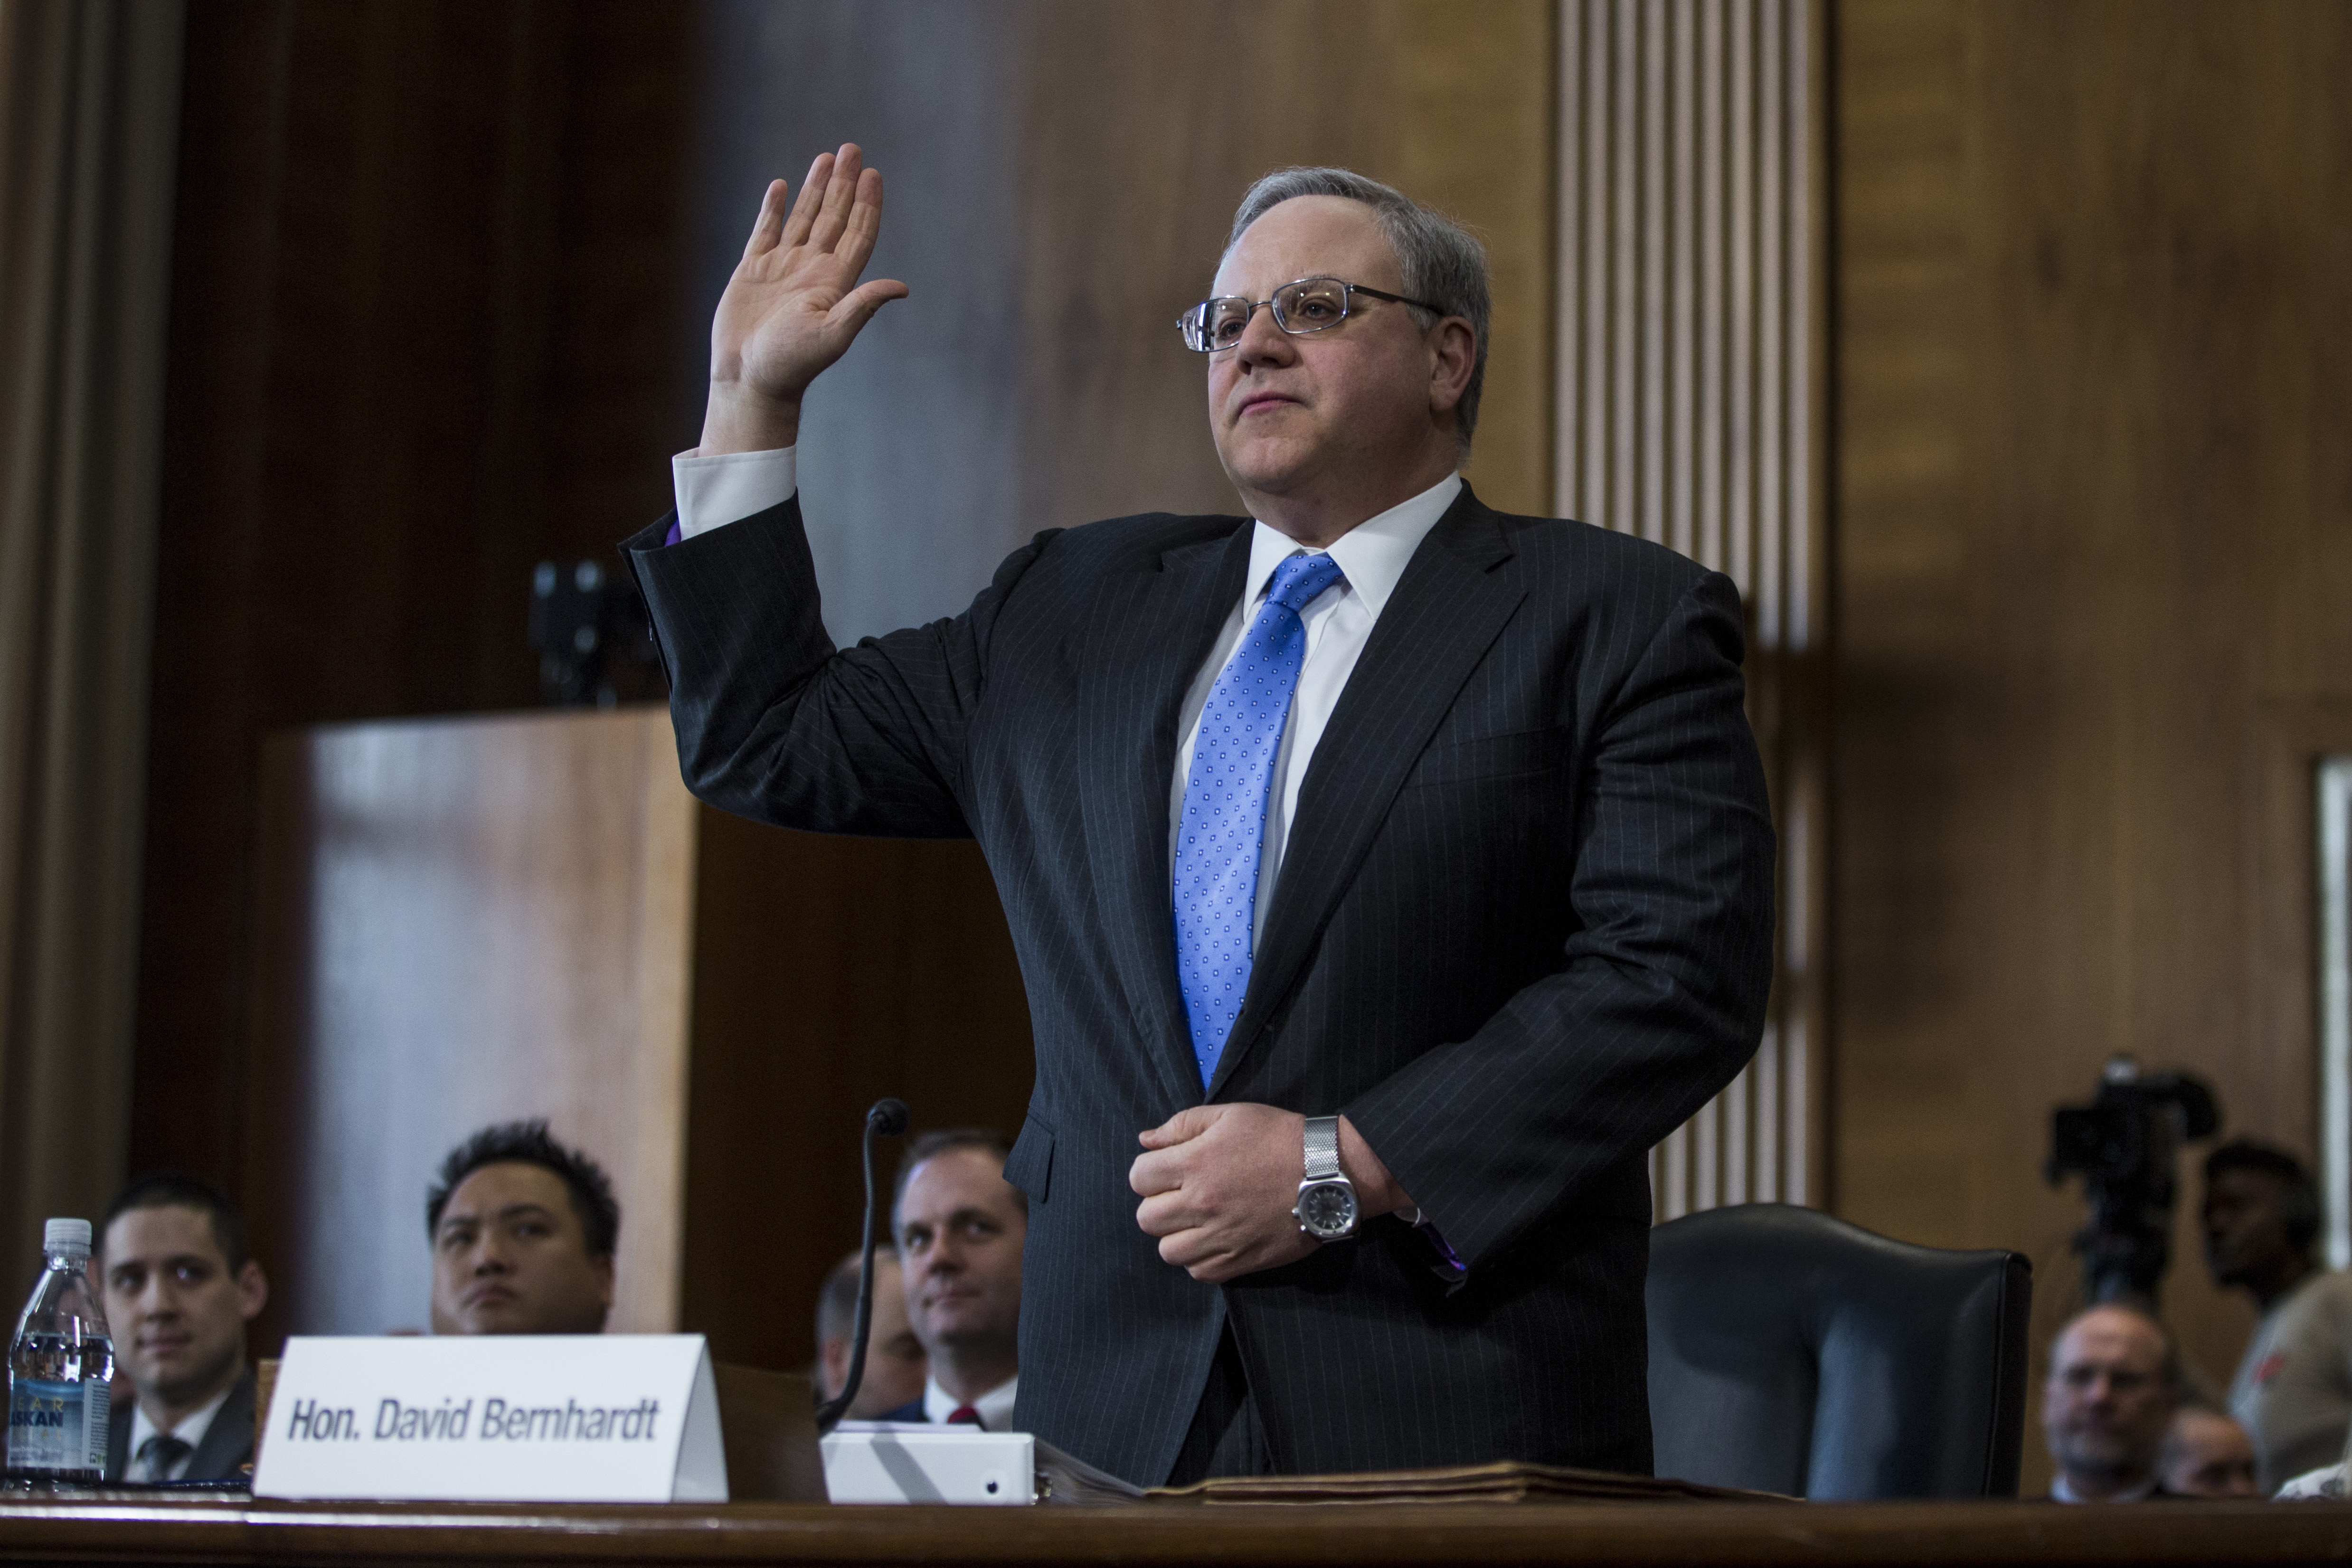 WASHINGTON, DC - MARCH 28: David Bernhardt, President Donald Trump's nominee to be Interior Secretary, is sworn in during a Senate Energy and Natural Resources Committee confirmation hearing on March 28, 2019 in Washington, DC. (Photo by Zach Gibson/Getty Images)